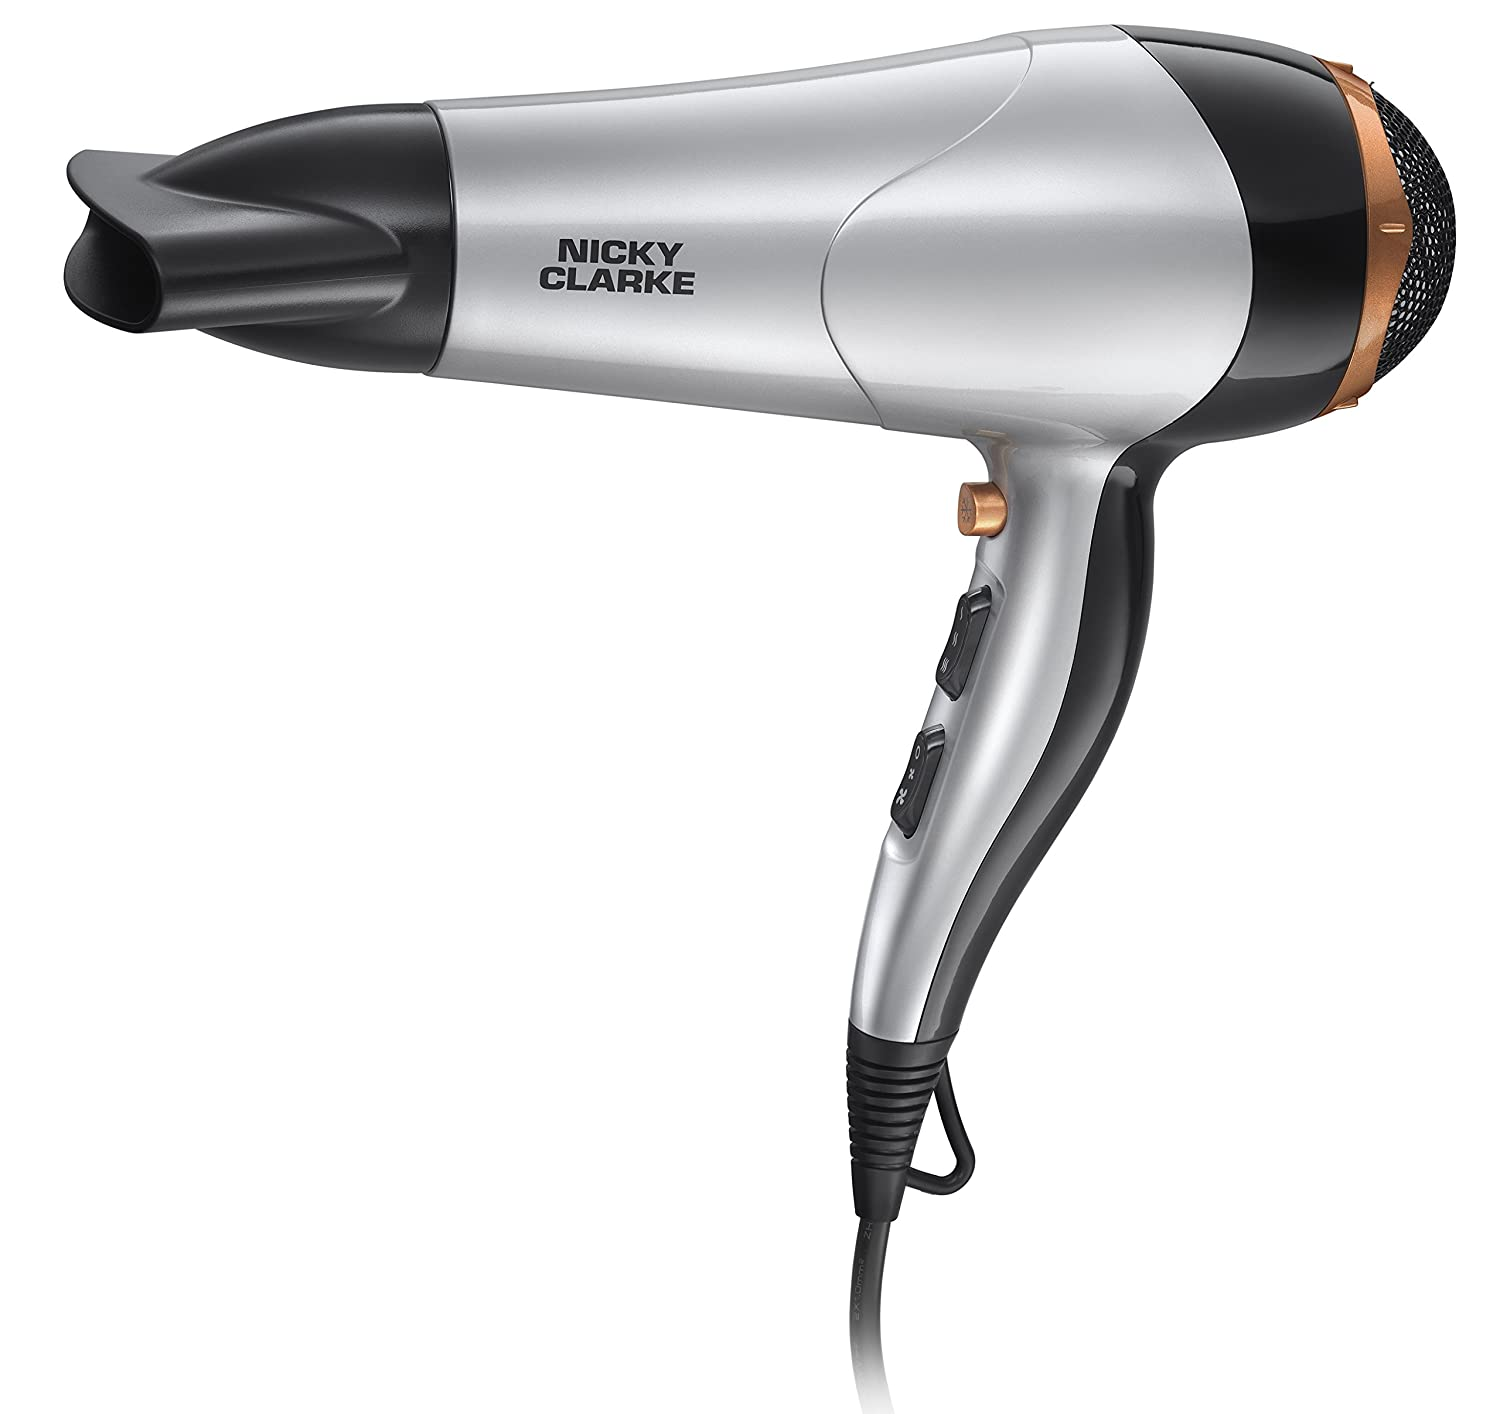 Babyliss Ombre Hair DryerOMBRE HAIRDRYER Top 10 The